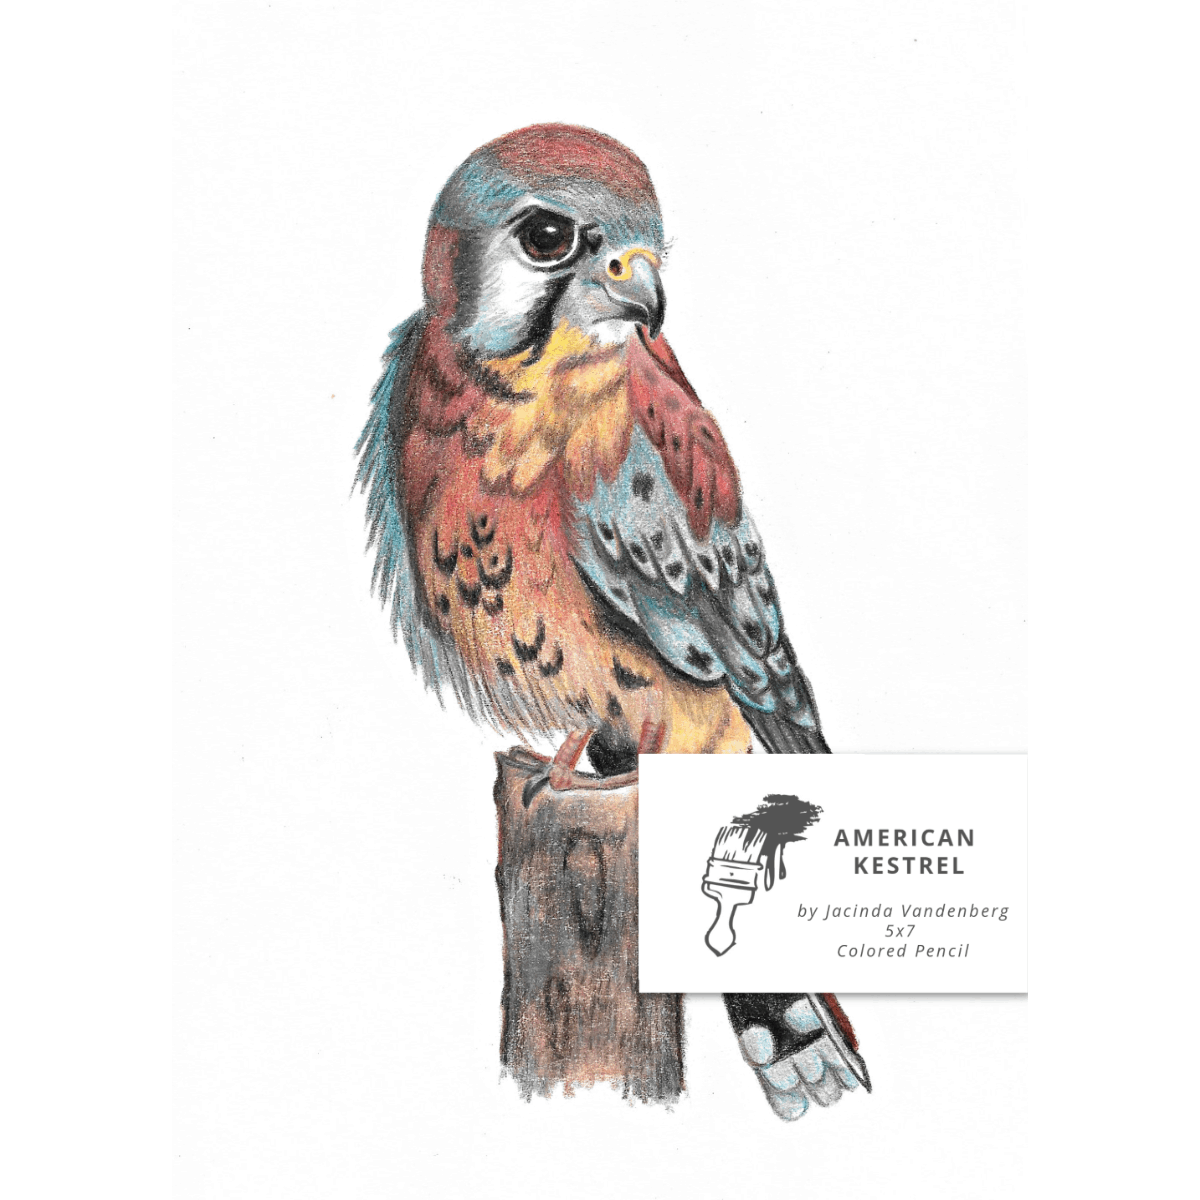 5x7 American Kestrel in Colored Pencil